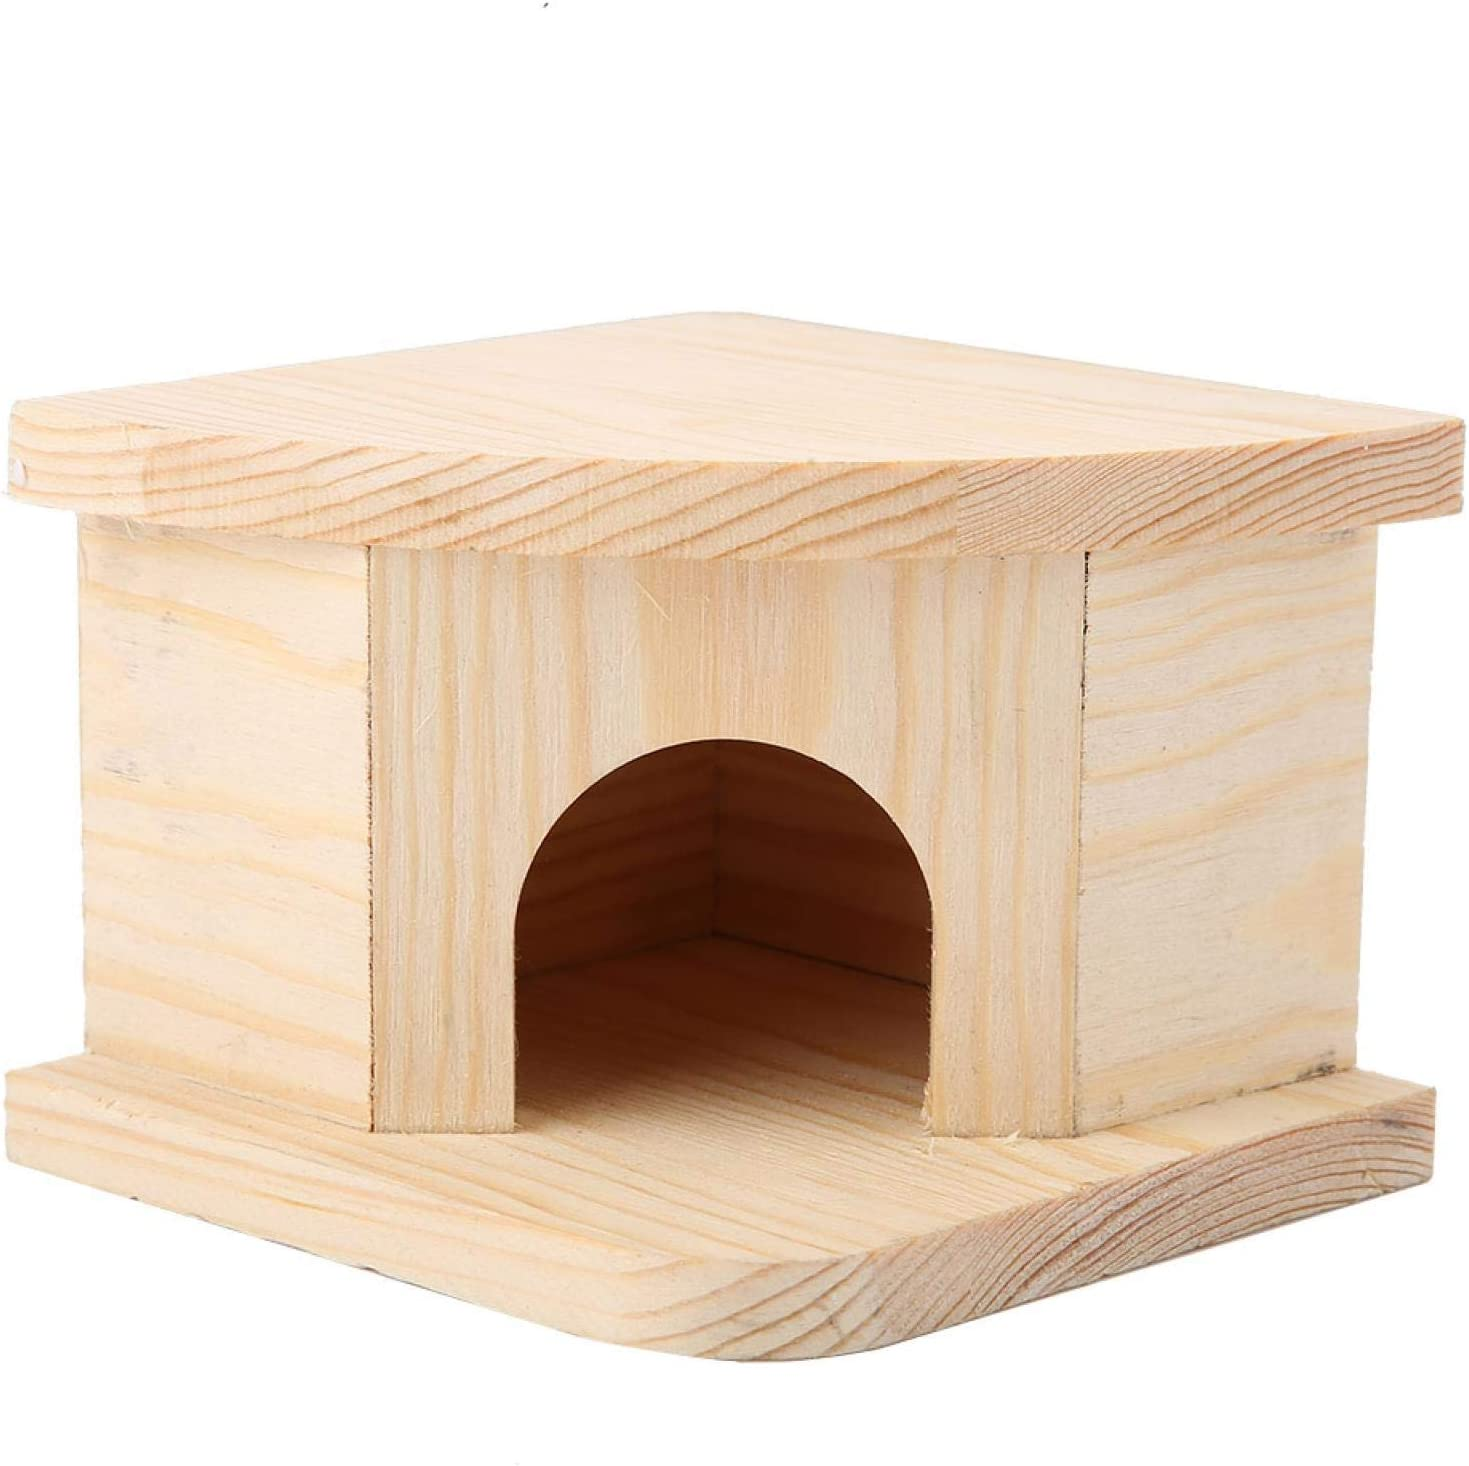 Department store Okuyonic Wooden Max 88% OFF Hamster House Comfortab Bed